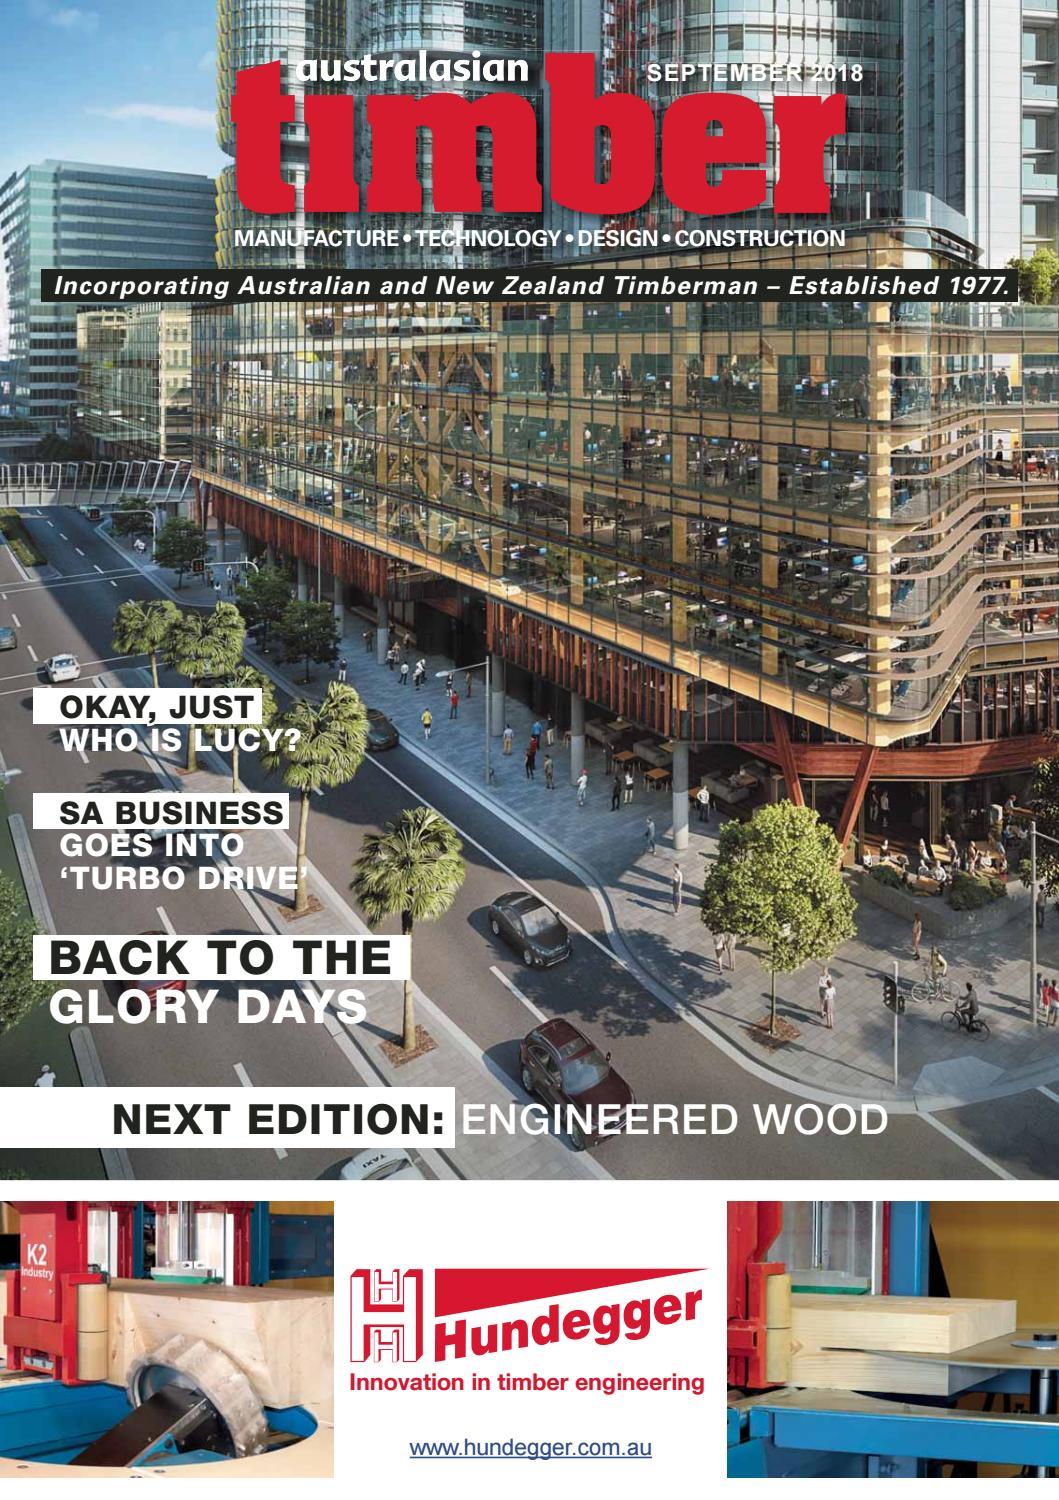 Australasian Timber Magazine - September 2018 by provincial